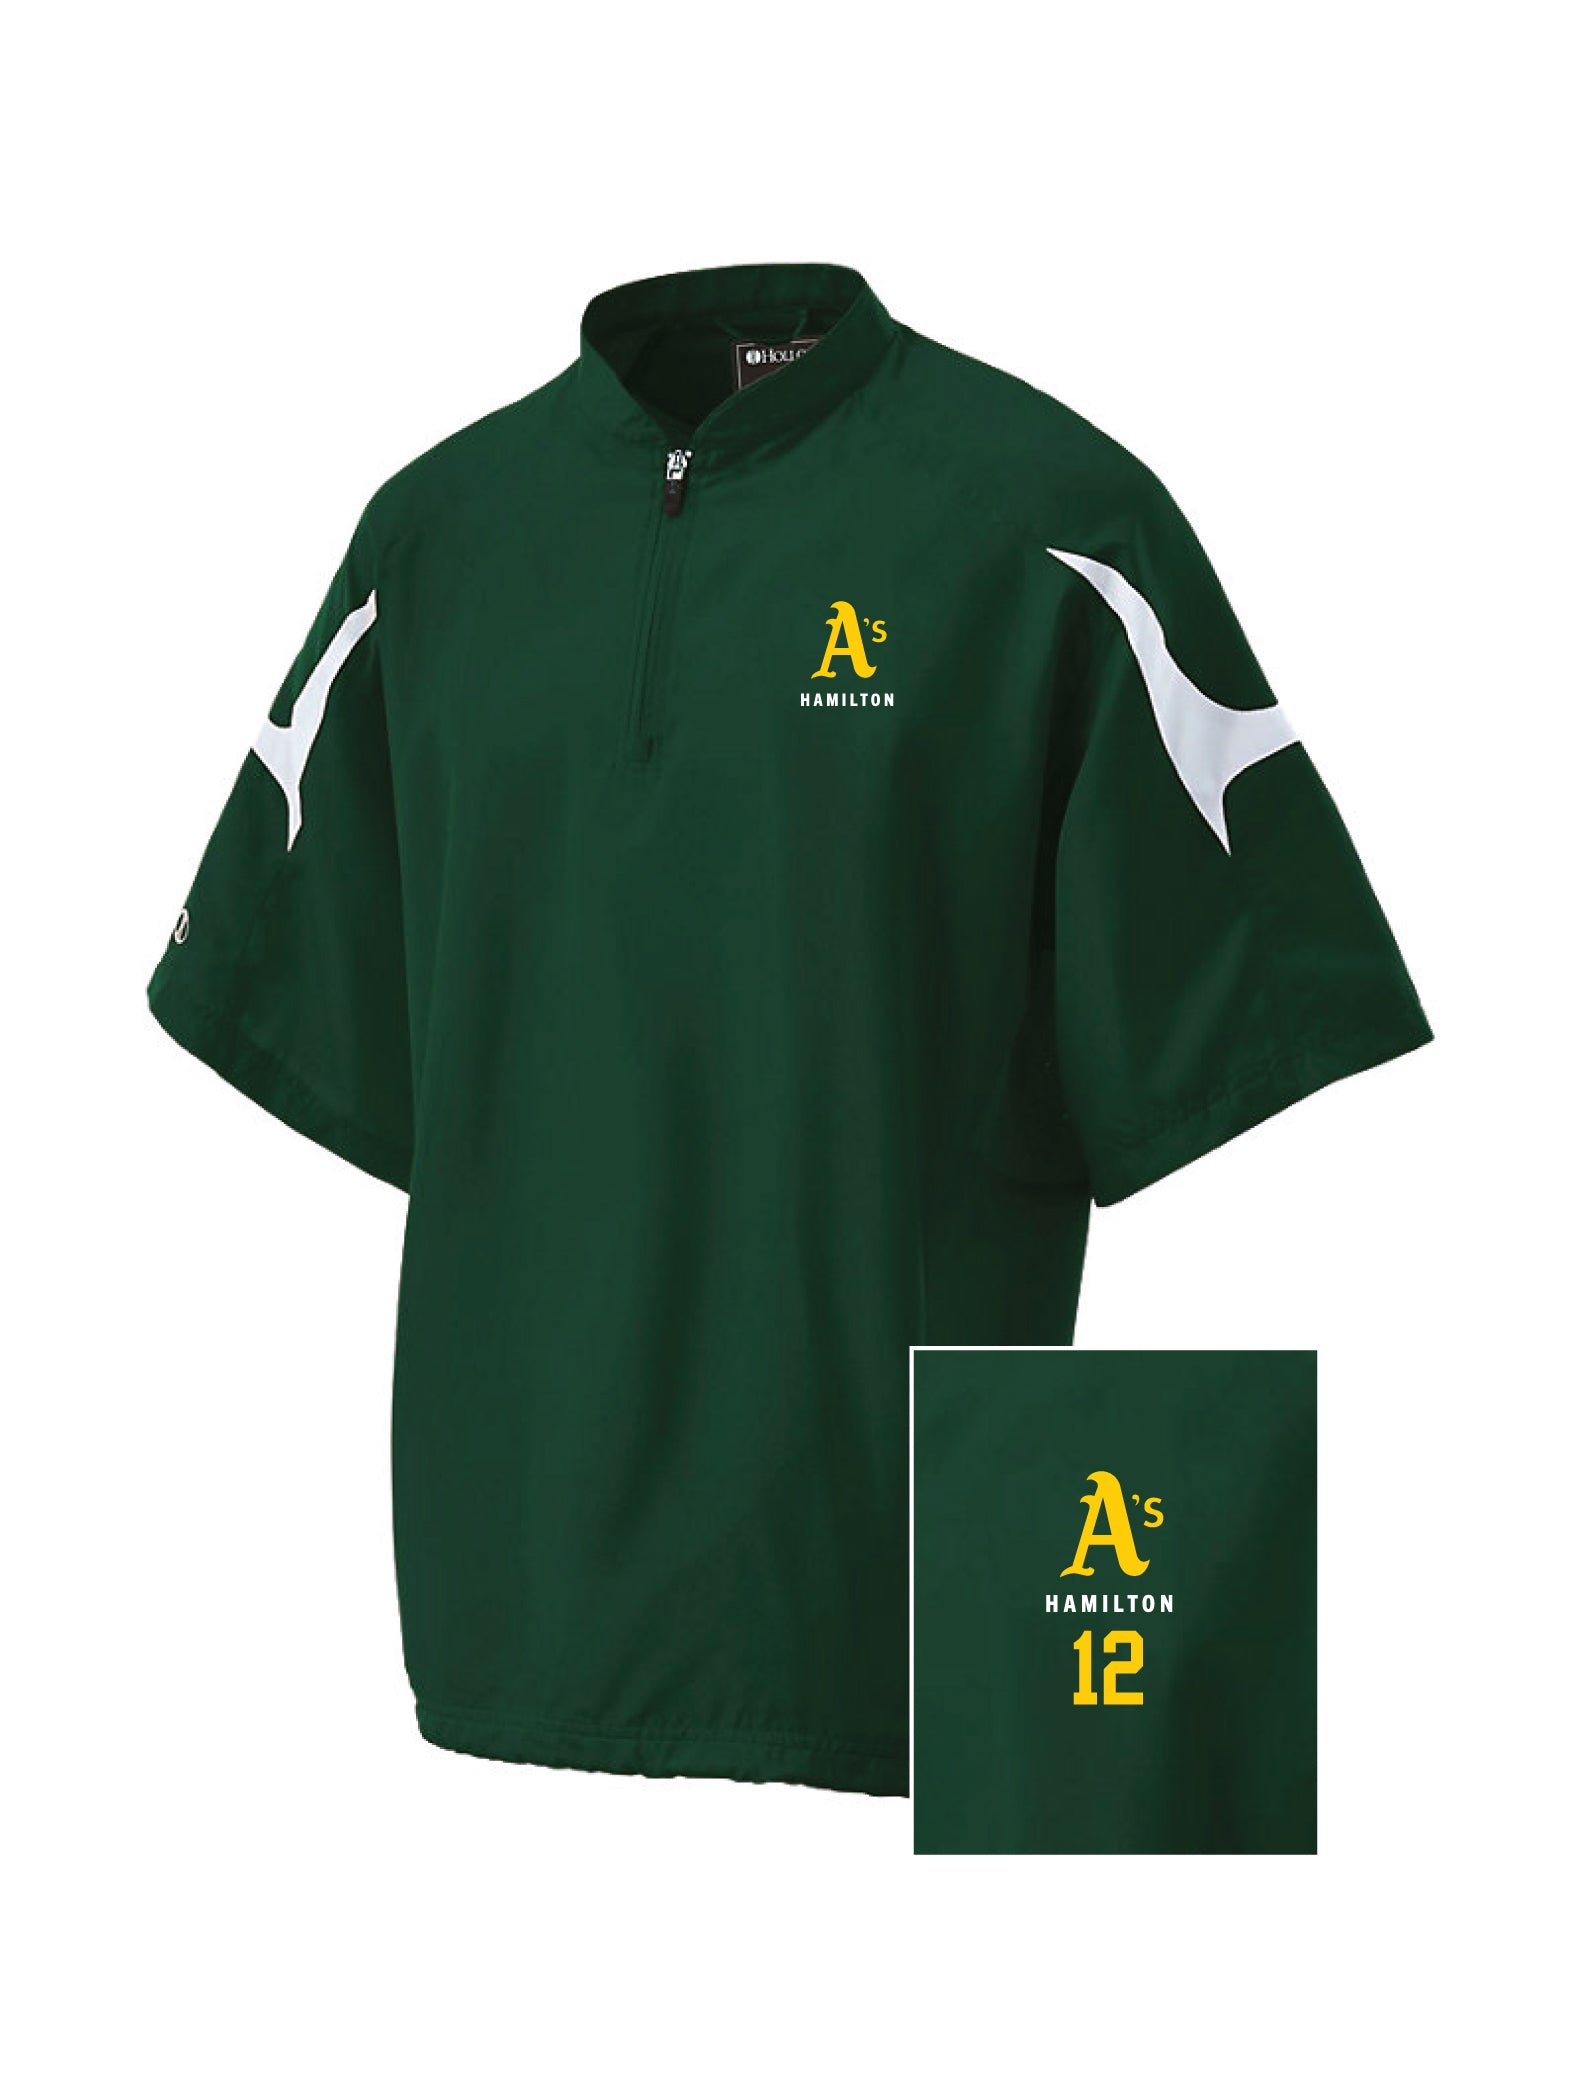 A's Short Sleeve Holloway Cage Jacket